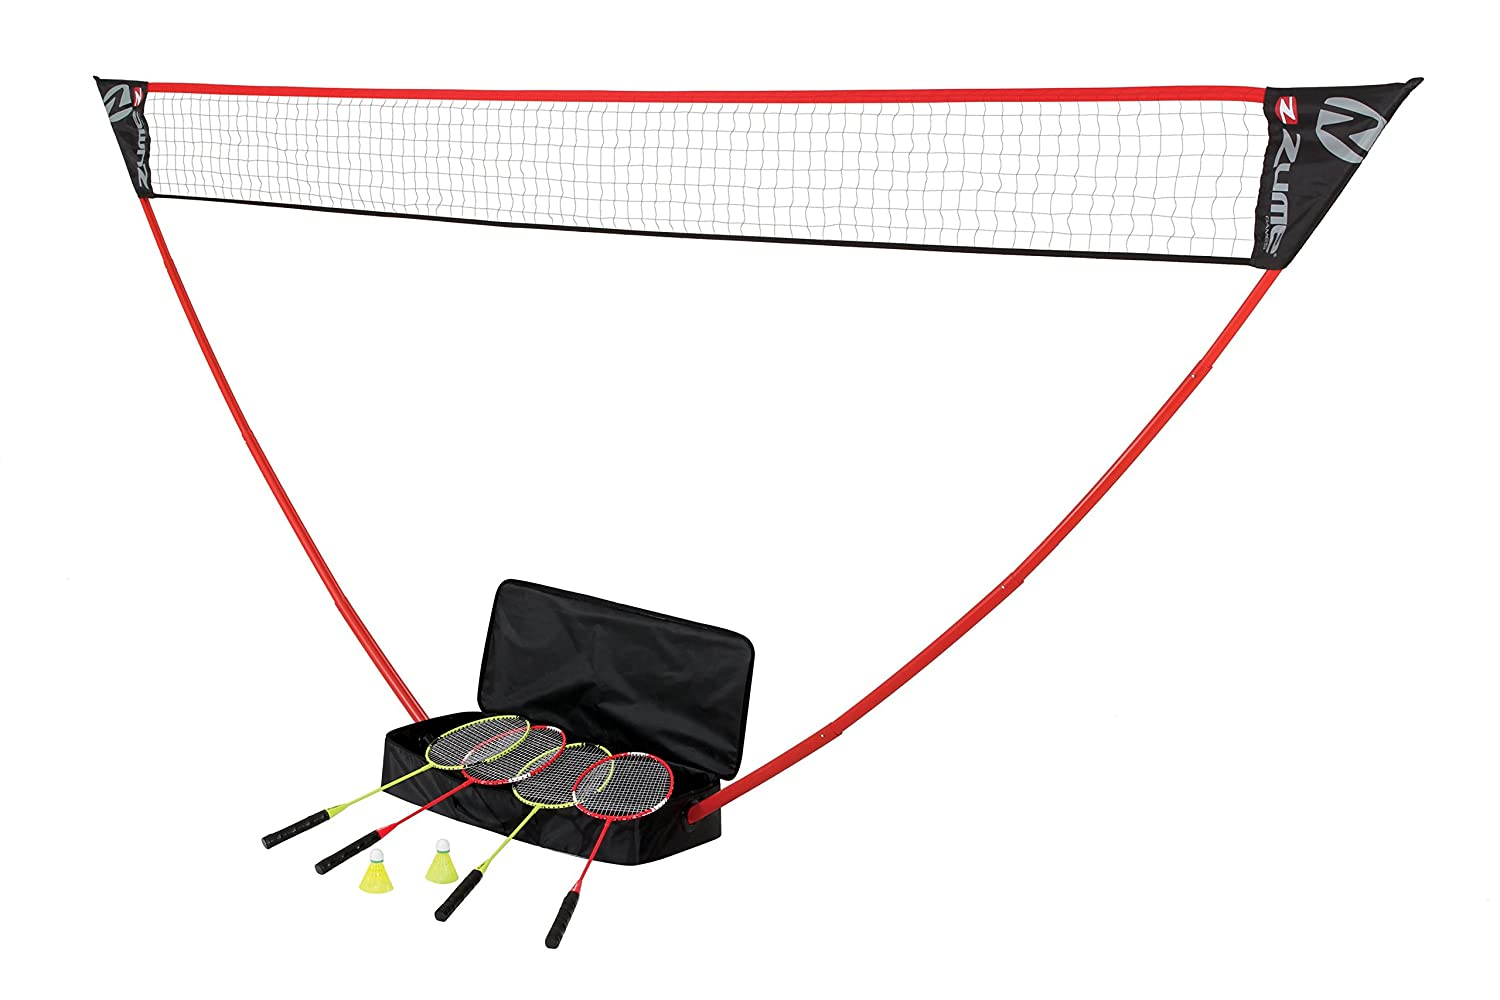 Zume Games Portable Badminton Set with Freestanding Base – Sets Up on Any Surface in Seconds – No Tools or Stakes Required